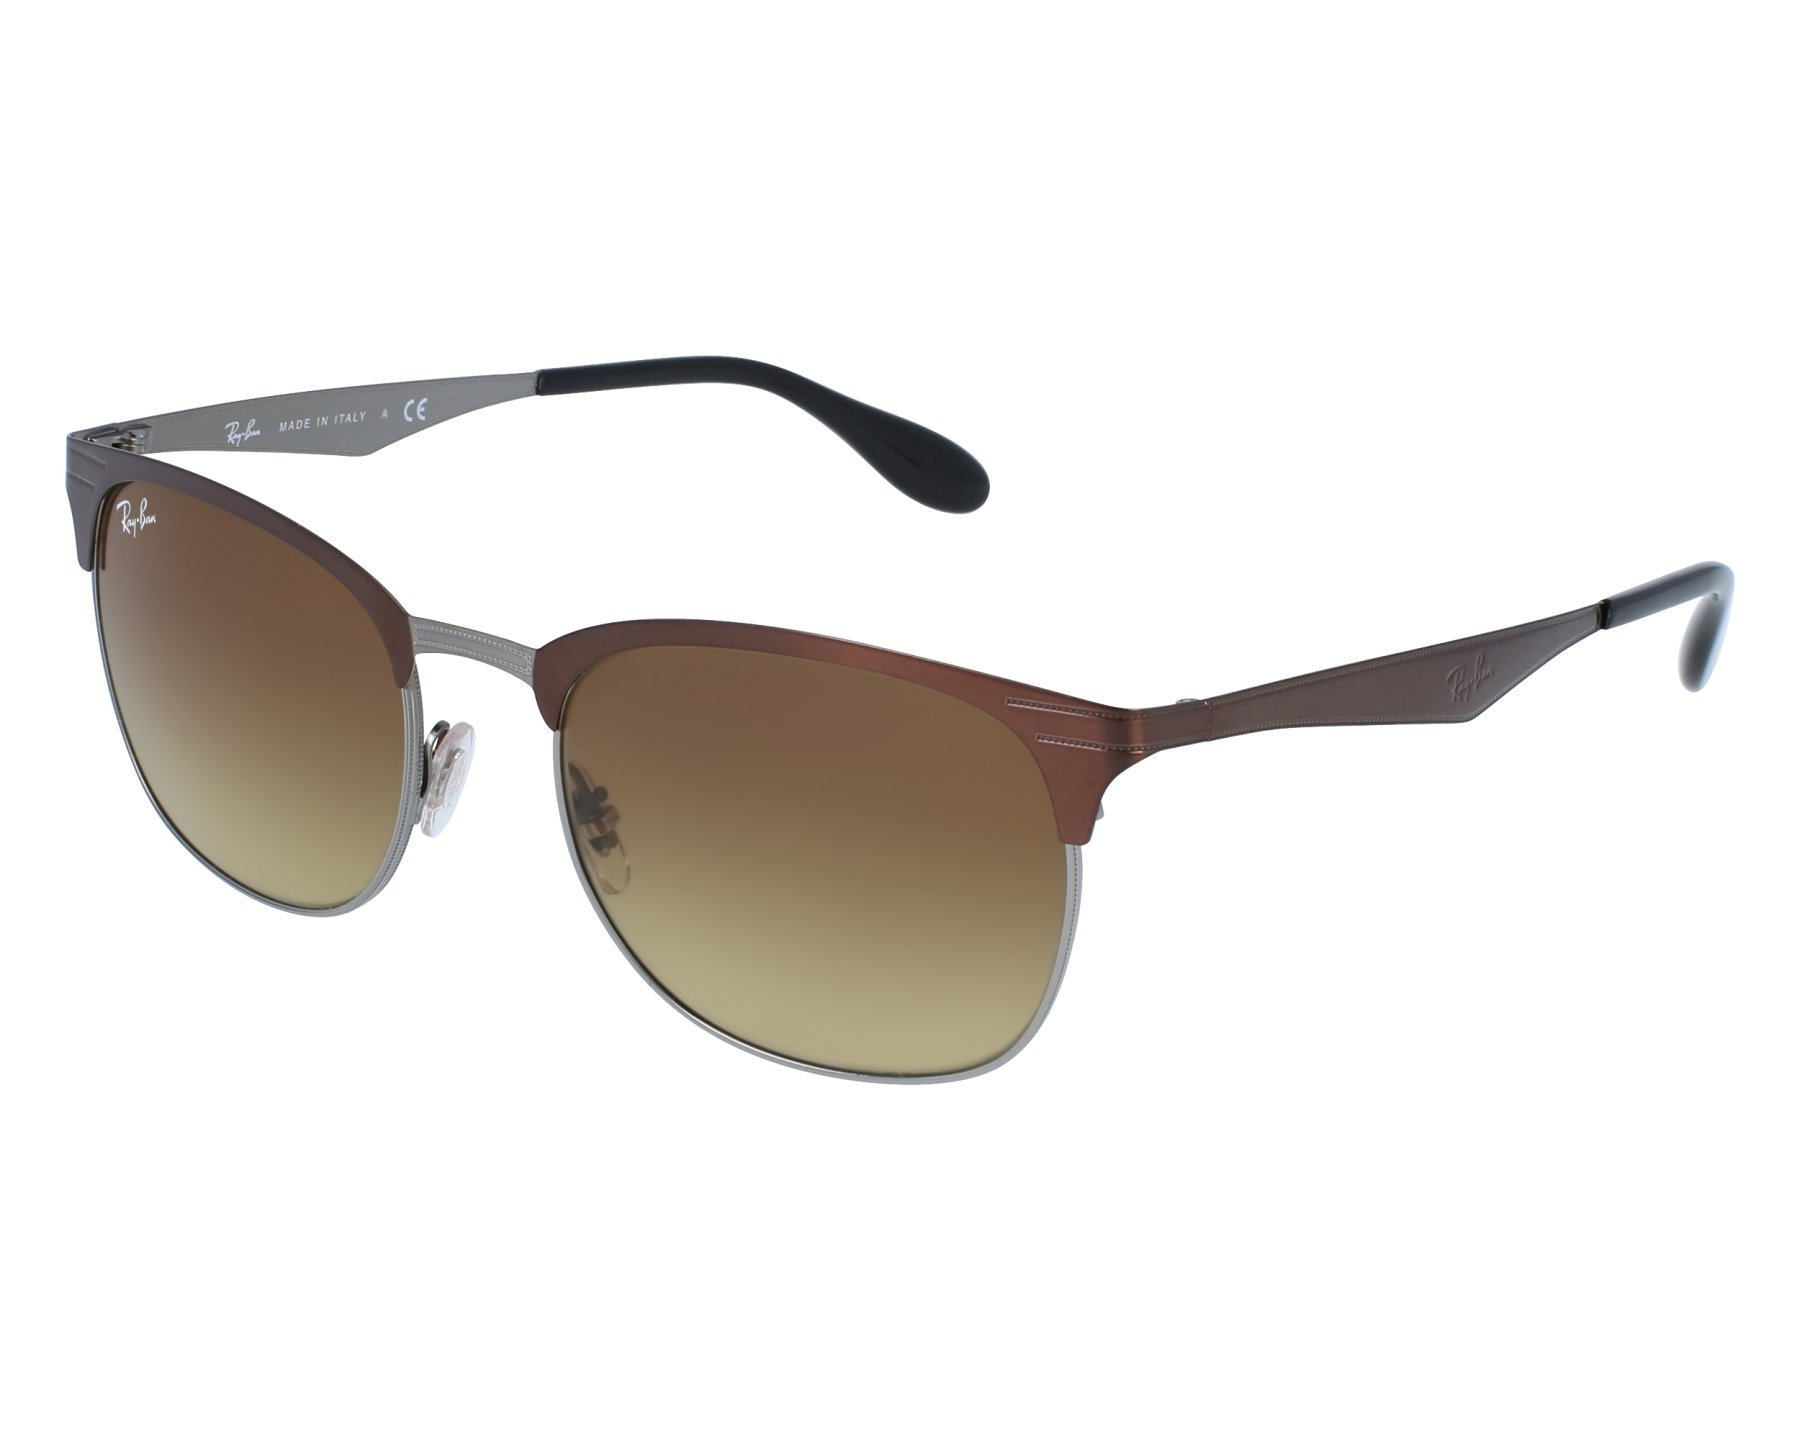 thumbnail Sunglasses Ray-Ban RB-3538 188 13 - Brown Grey front view ef5be0fc2a